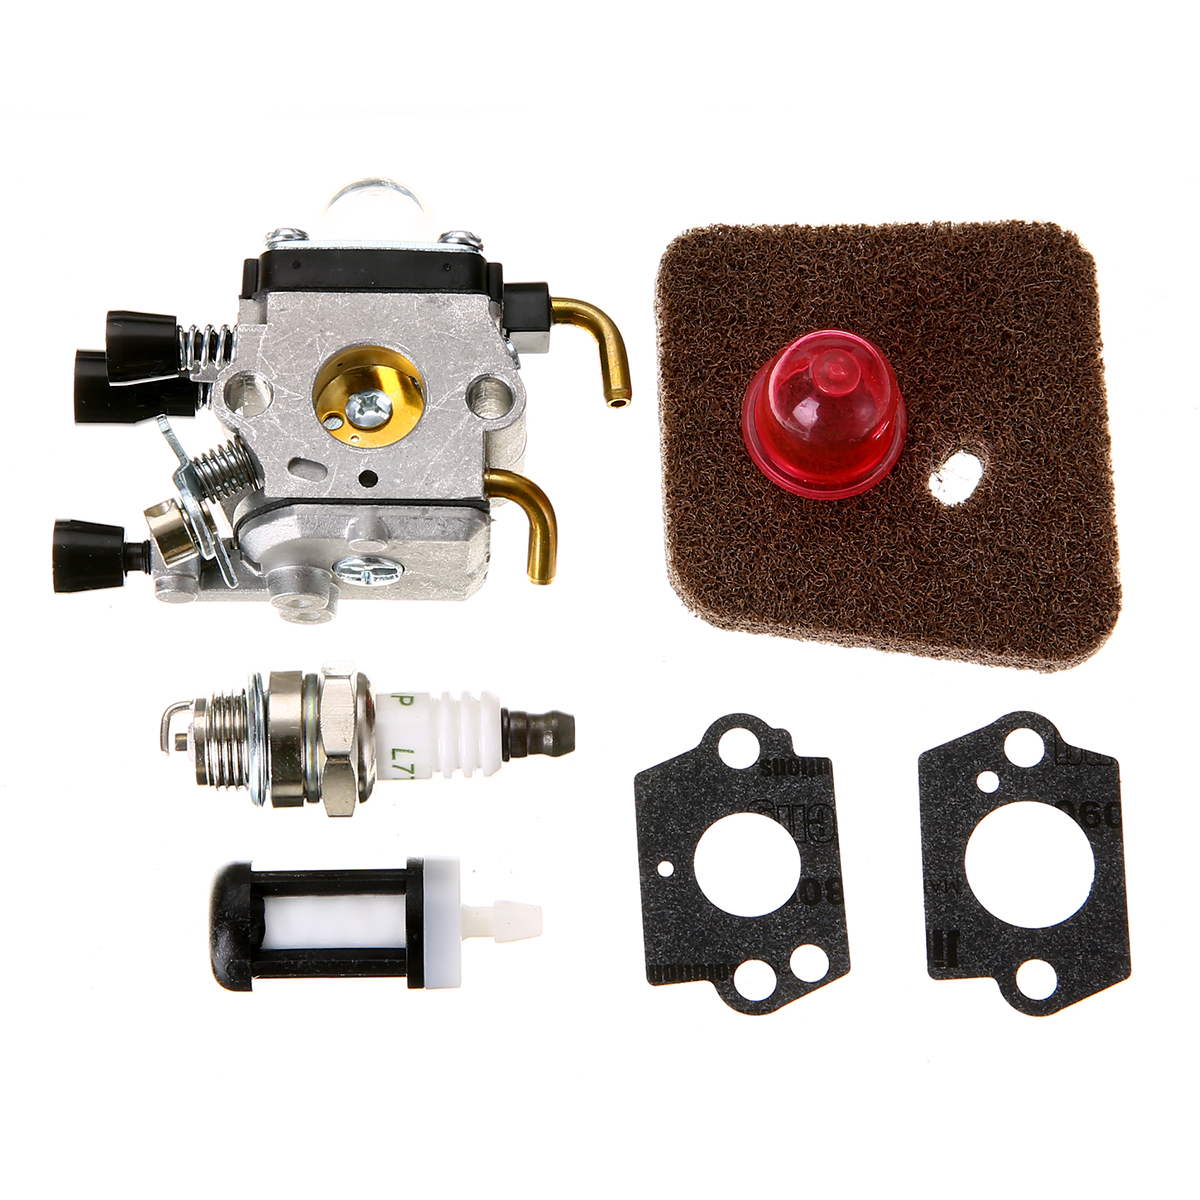 New Carburetor Carb Air Fuel Filter Replacement For FS38 FS45 FS46 FS55 HS45 FC55 KM55 FS85 Mayitr